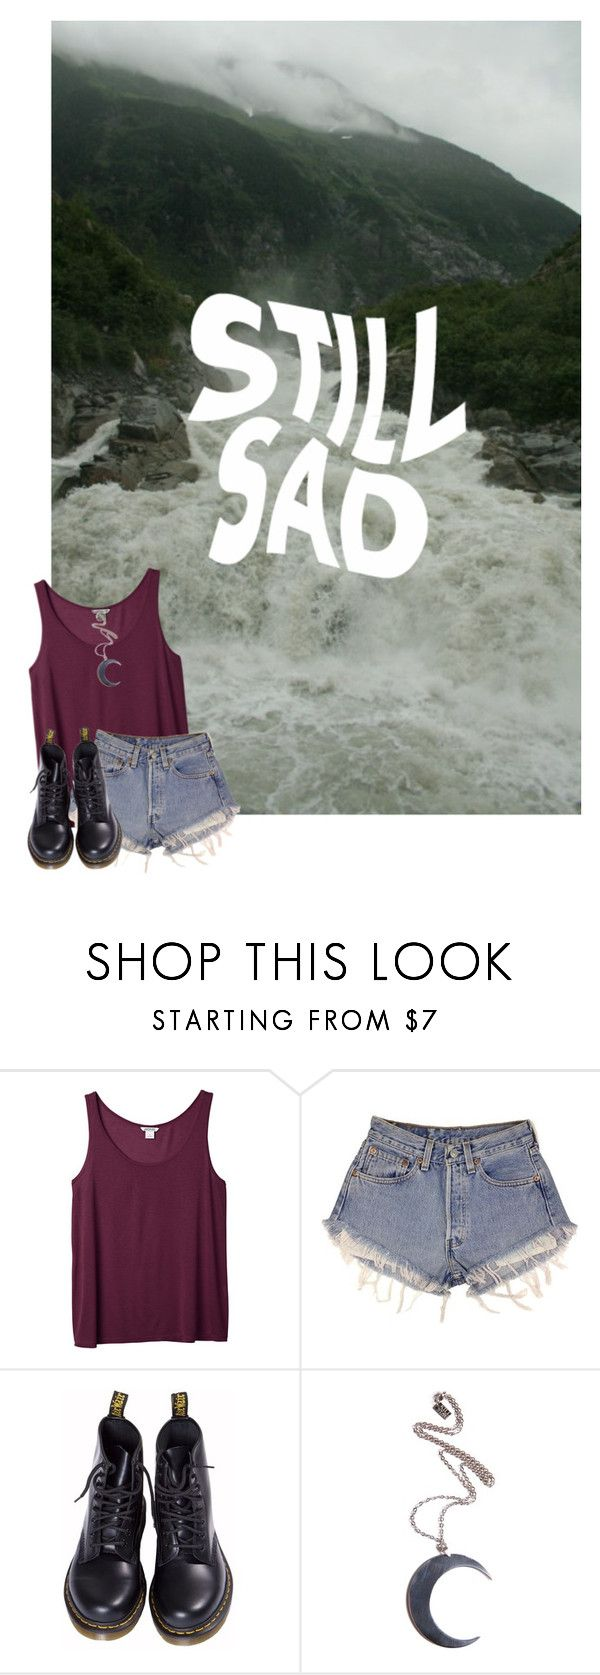 """c is for cute guys i cant get over"" by ghxstly ❤ liked on Polyvore featuring Monki, Levi's, Dr. Martens and Kill Star"